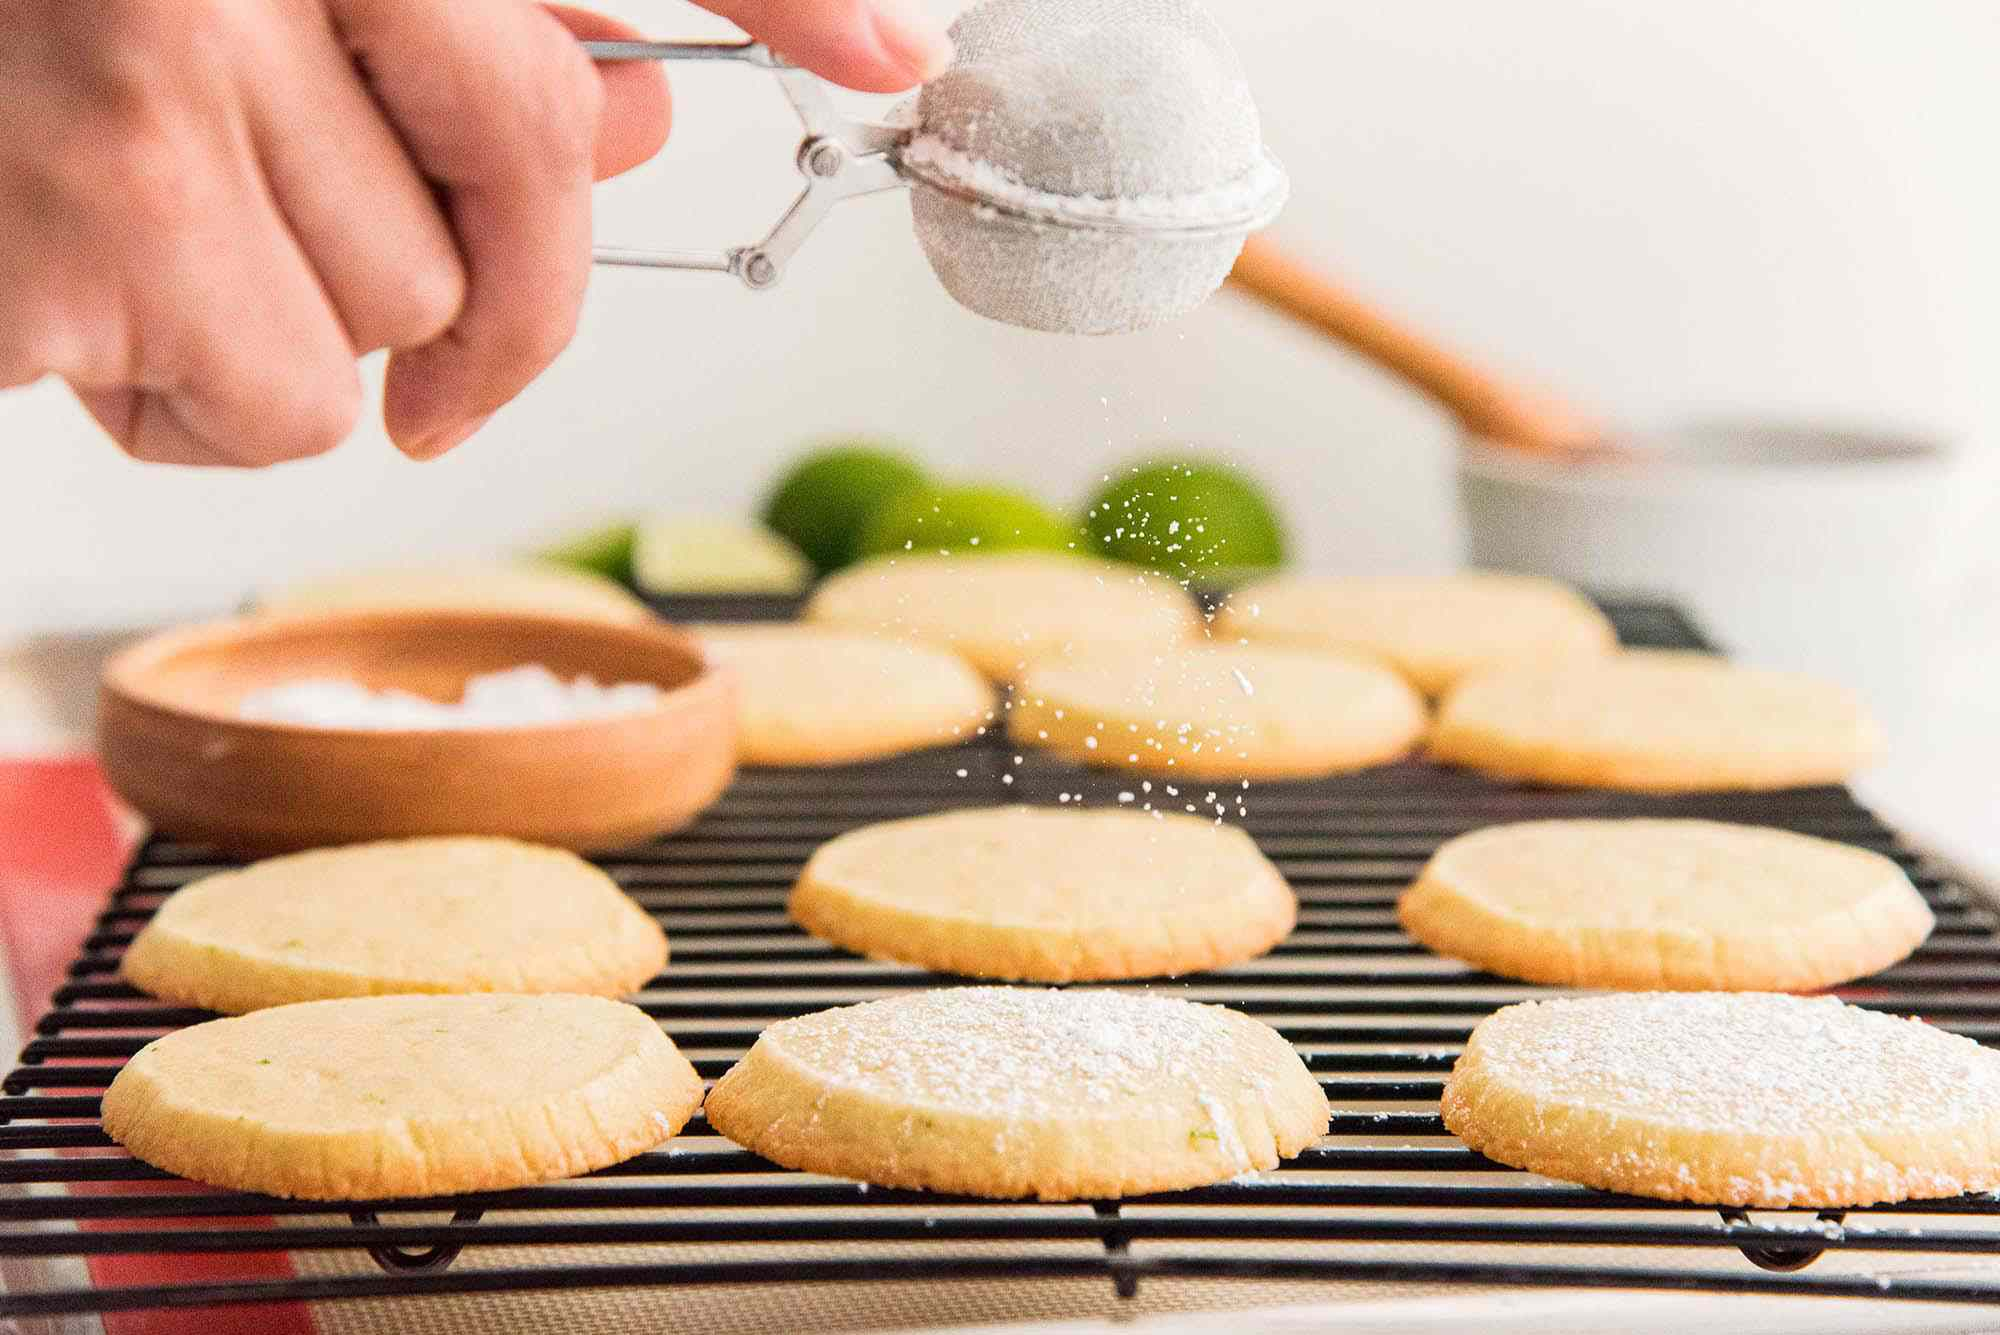 Horizontal view of lime cookies on a cooling rack being coated with powdered sugar. A hand is holding a small sifter over the cookies.